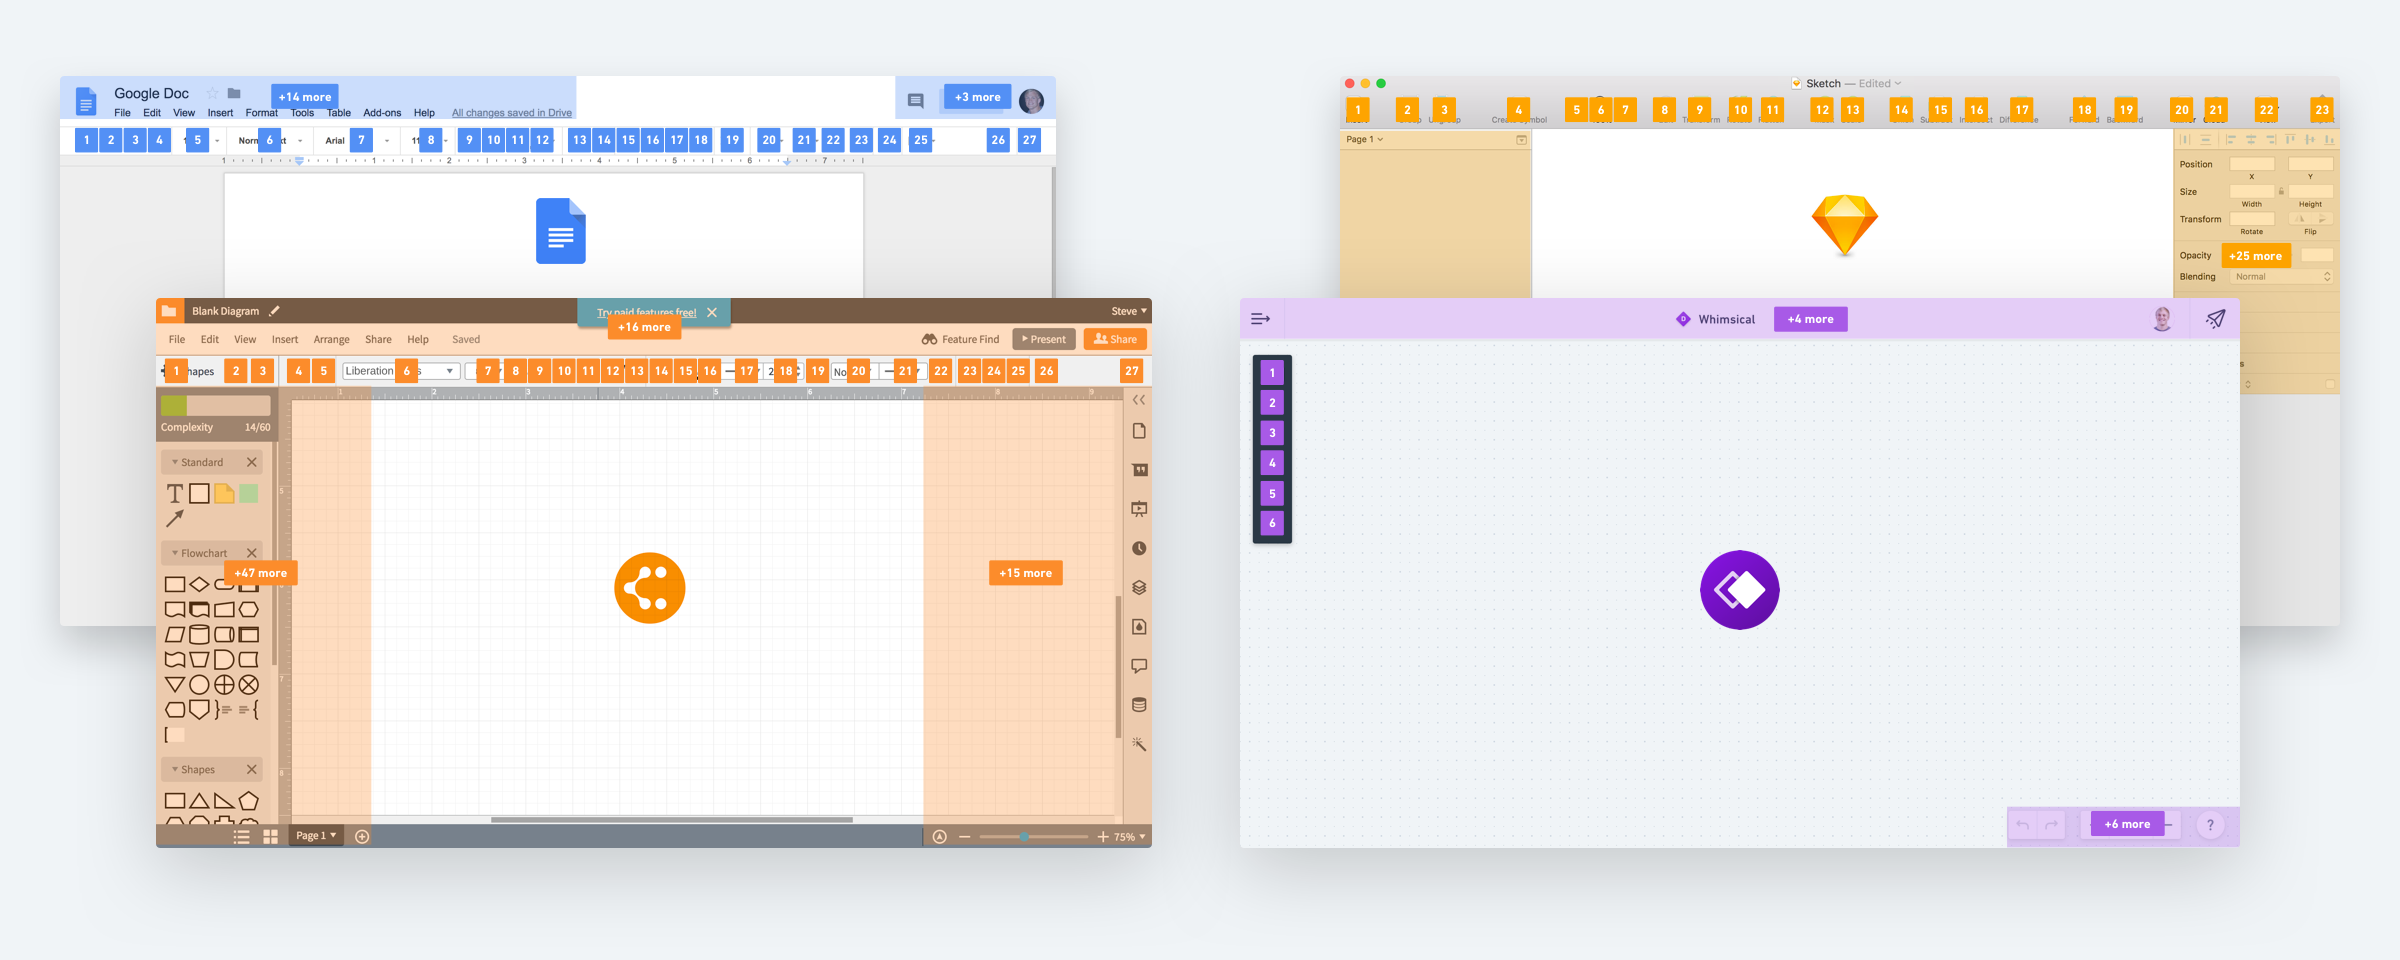 Number of Clickable Elements: Google Docs (27), Lucidchart (27), Sketch (23), Whimsical (6)